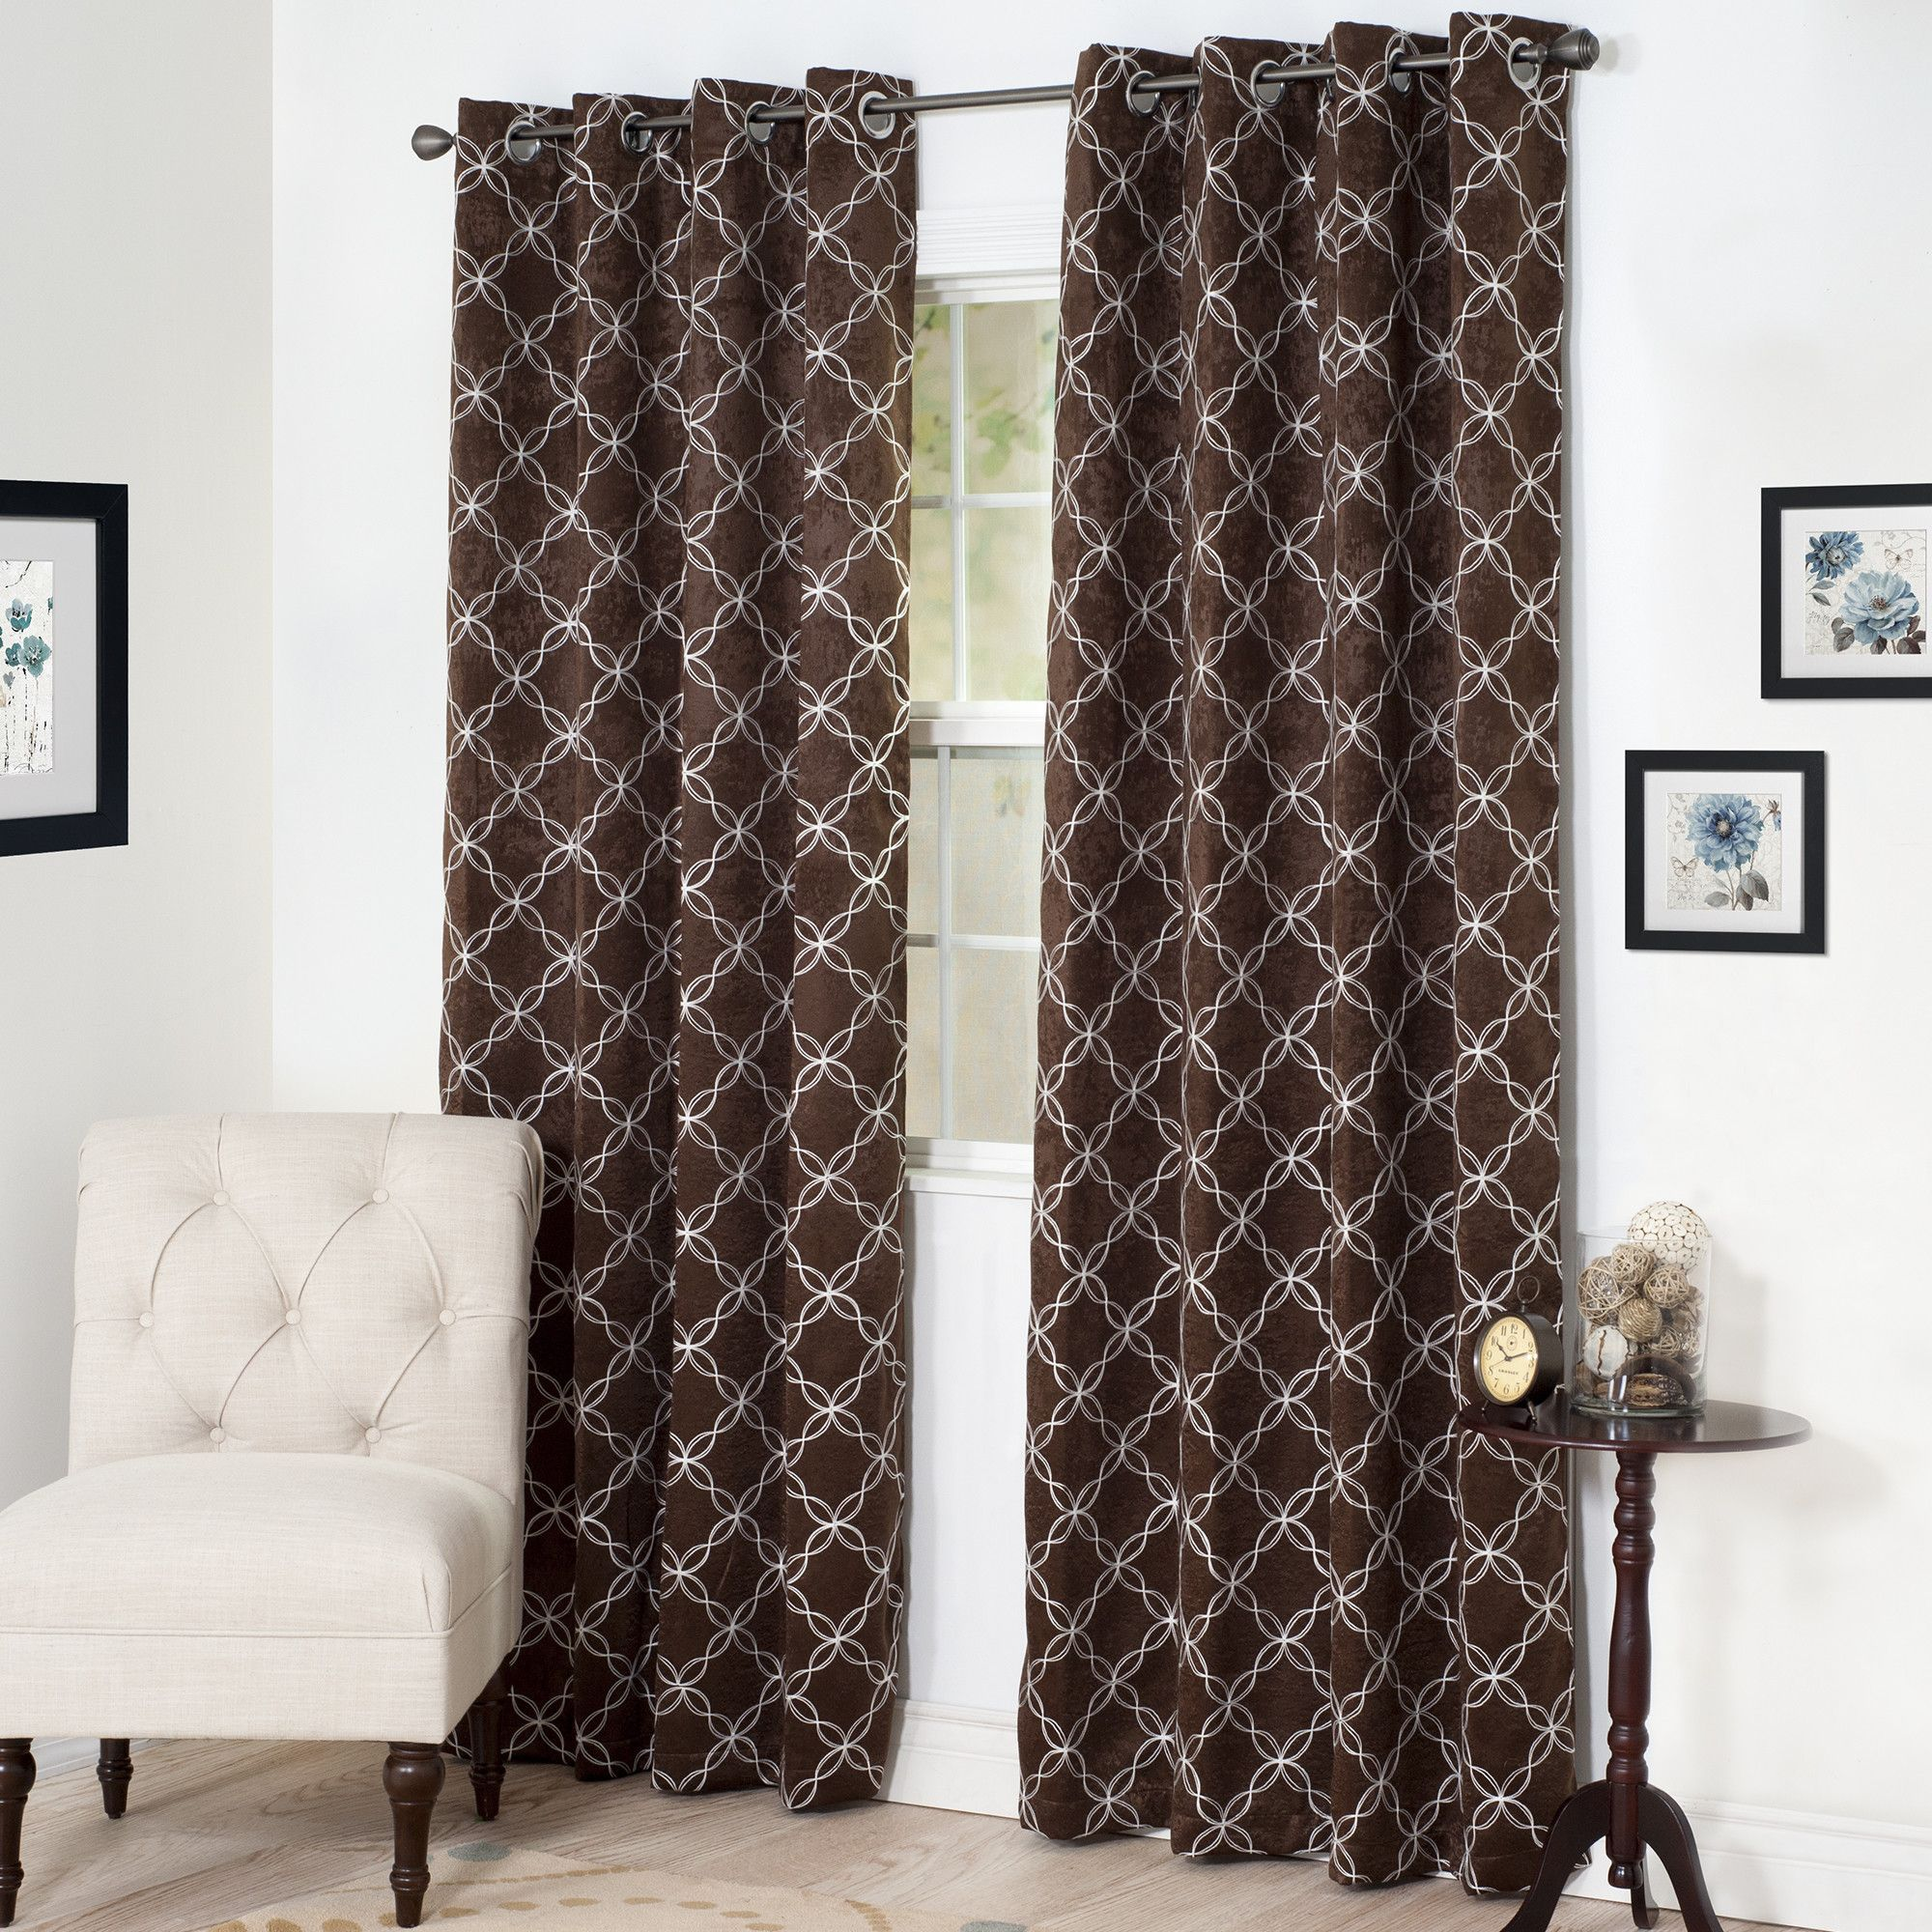 Myra Single Curtain Panel Products Pinterest - Cortinas-marron-chocolate